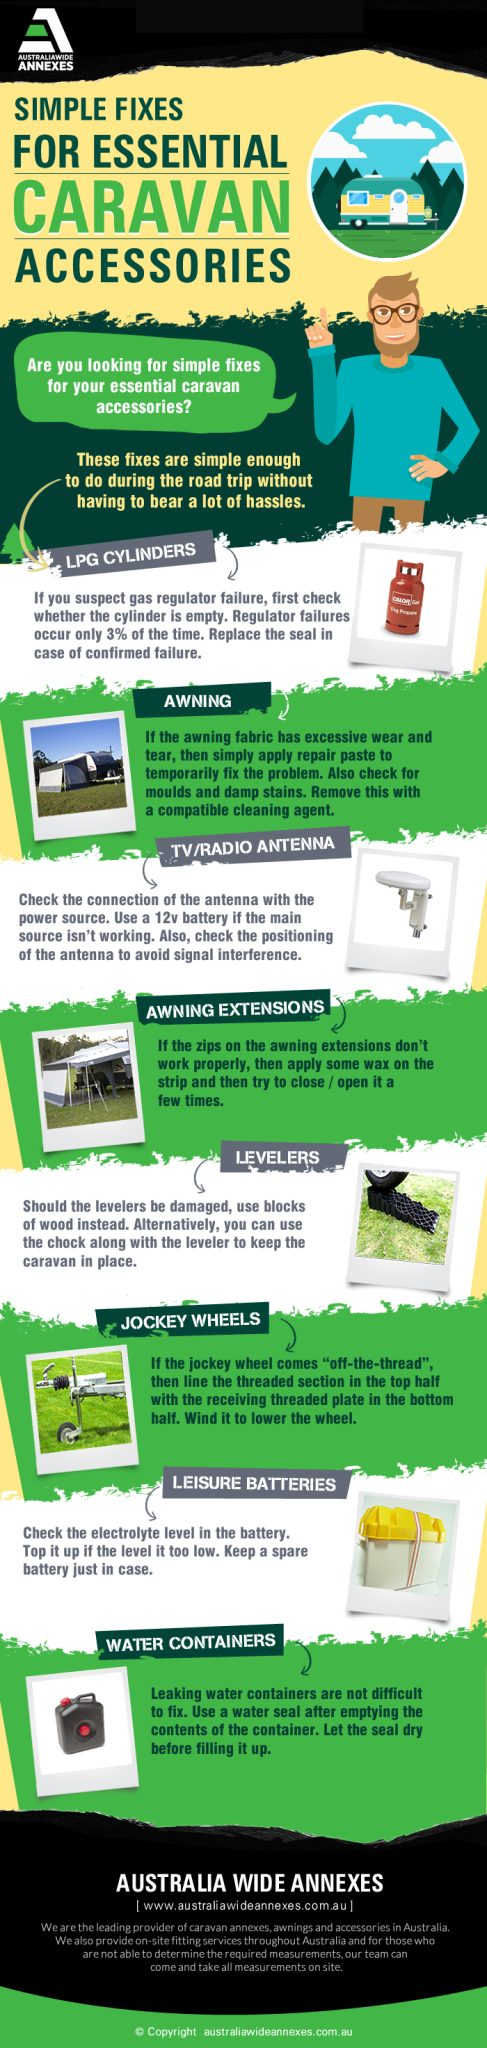 Simple Fixes for Essential Caravan Accessories - AWA Infographic